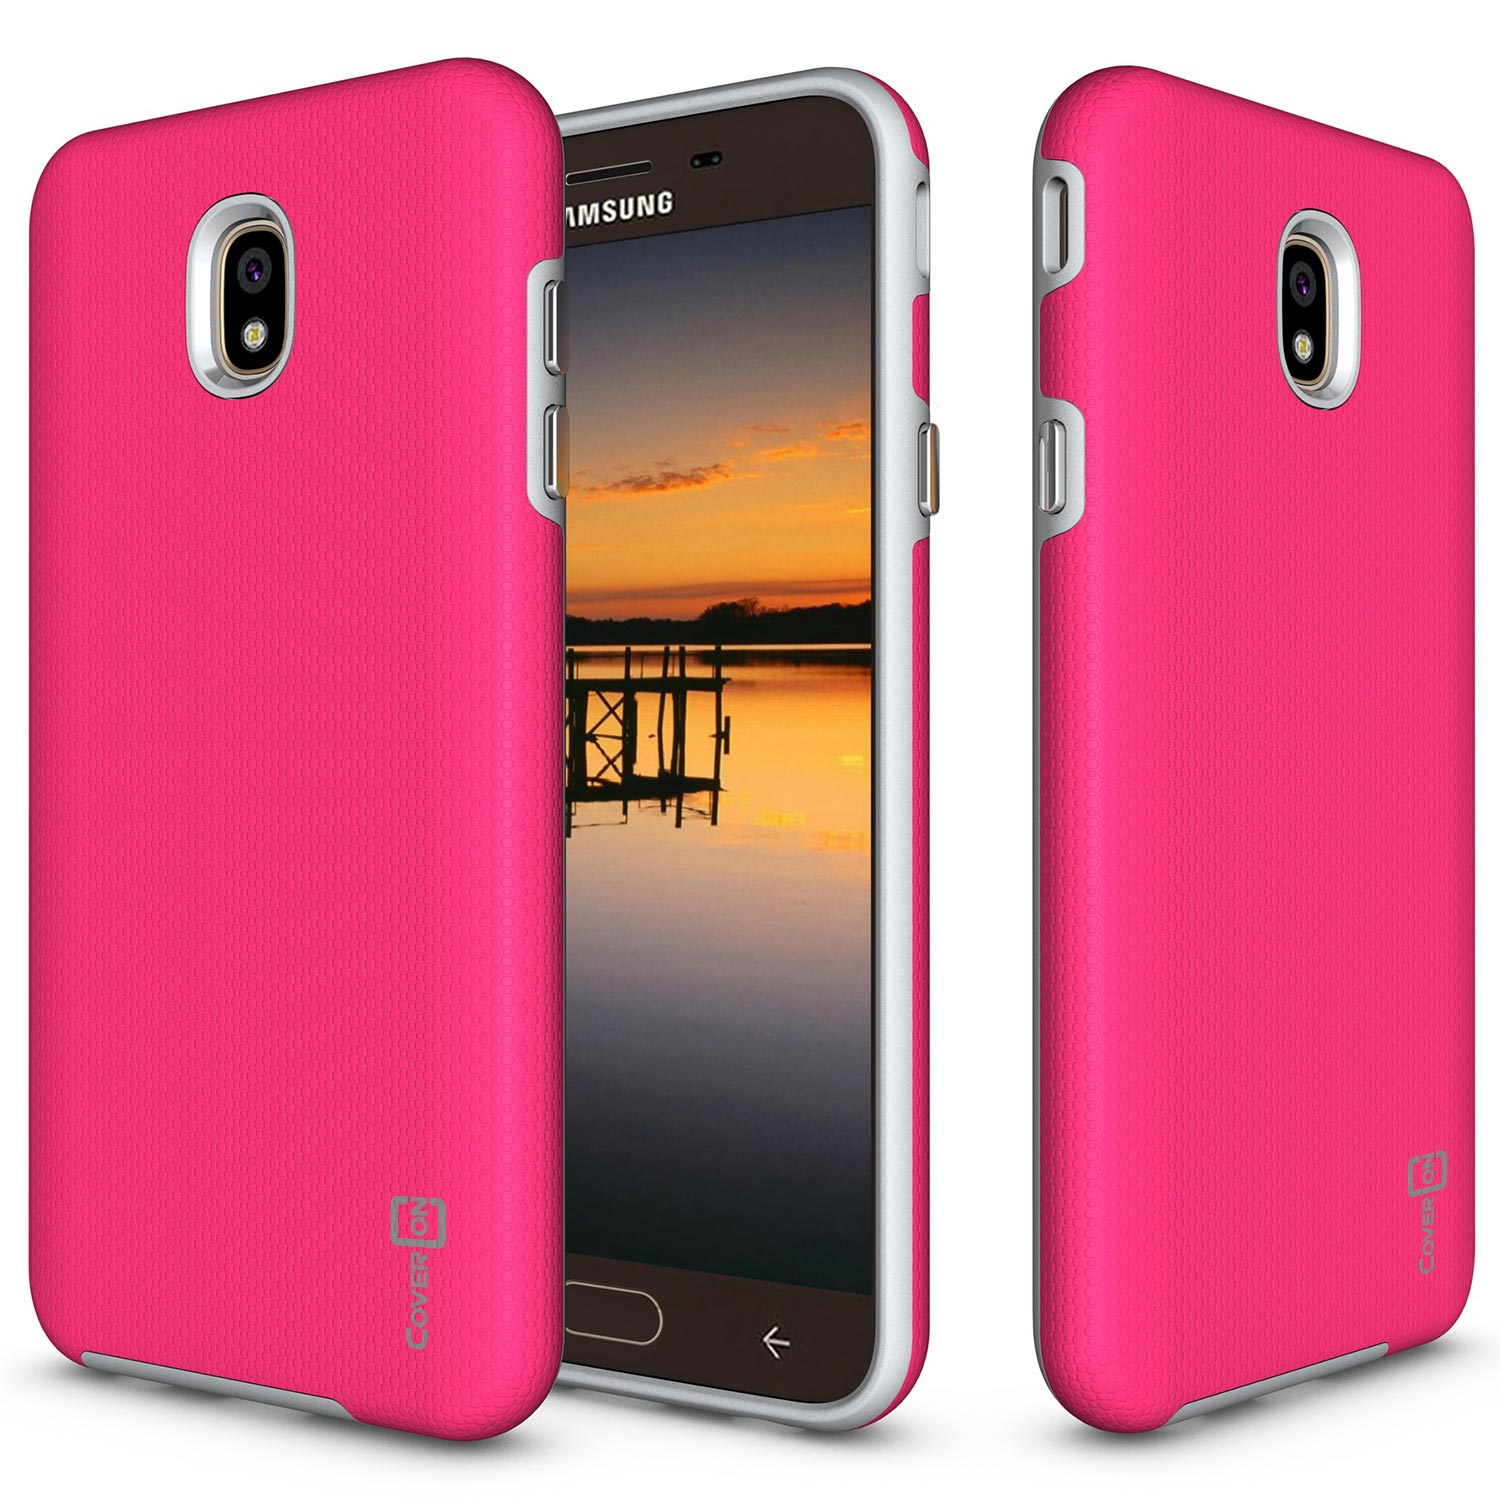 buy online c7556 6c8e6 Details about Hot Pink Hard Case For Samsung Galaxy J7 Star / J7 Aero / J7  Eon / J7 Crown